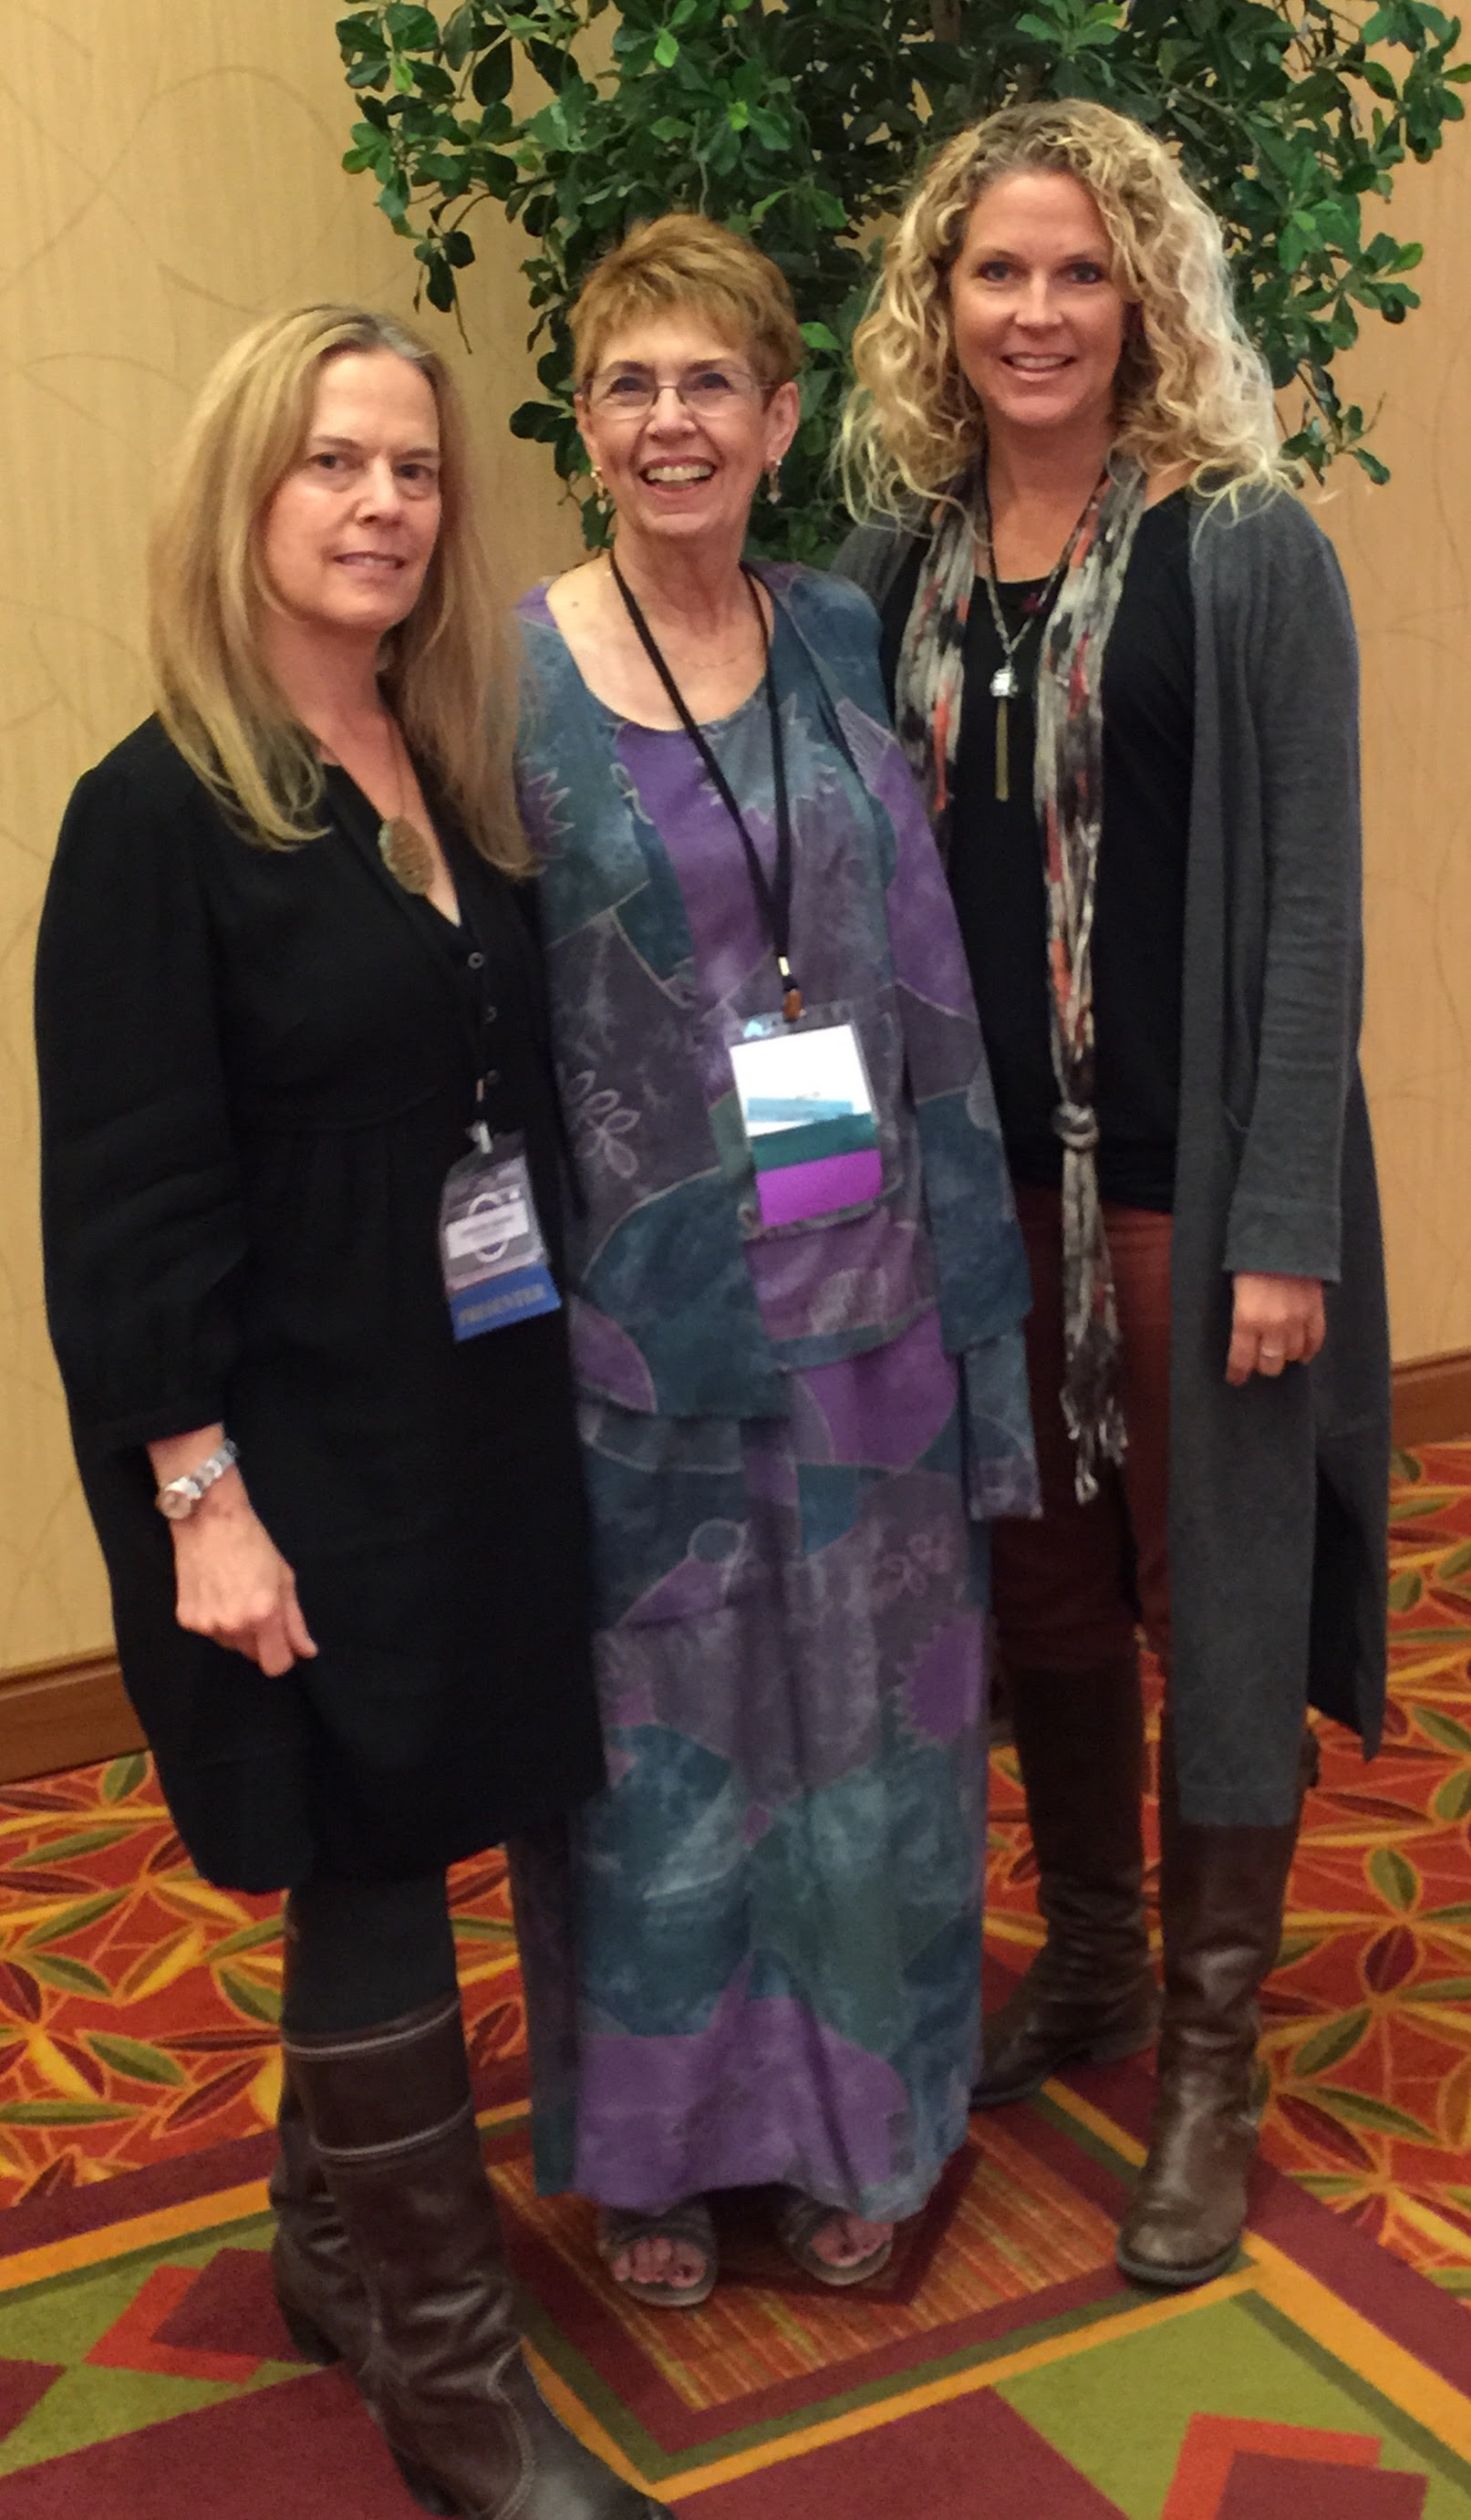 Catherine, Linda, and Kimmy at CAGT